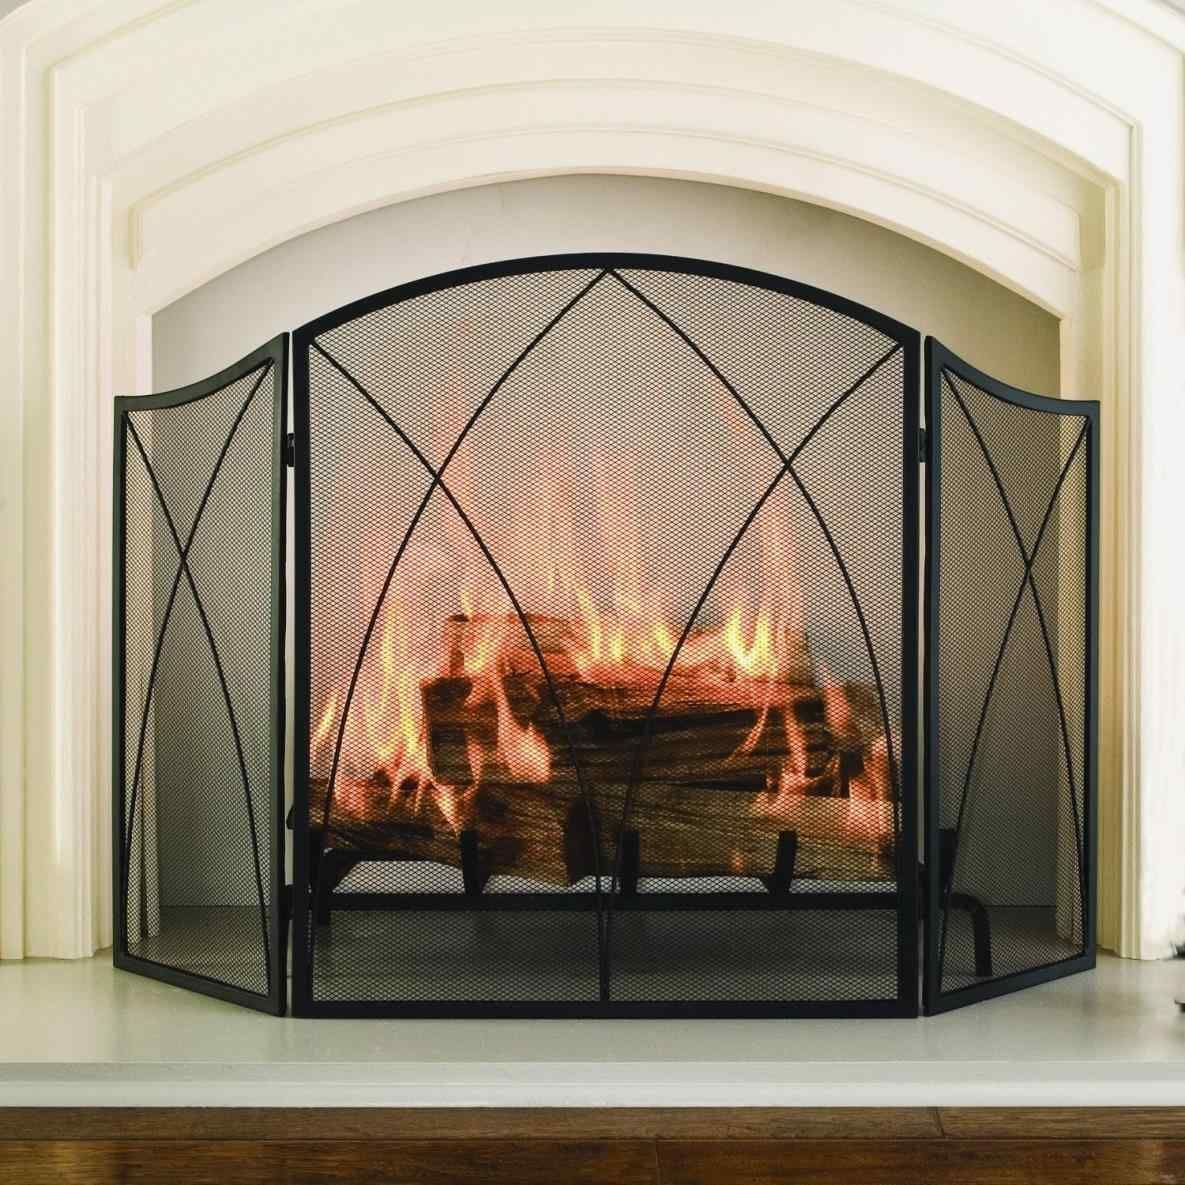 Wrought Iron Fireplace Screen Inspirational 11 Best Fancy Fireplace Screens Design and Decor Ideas